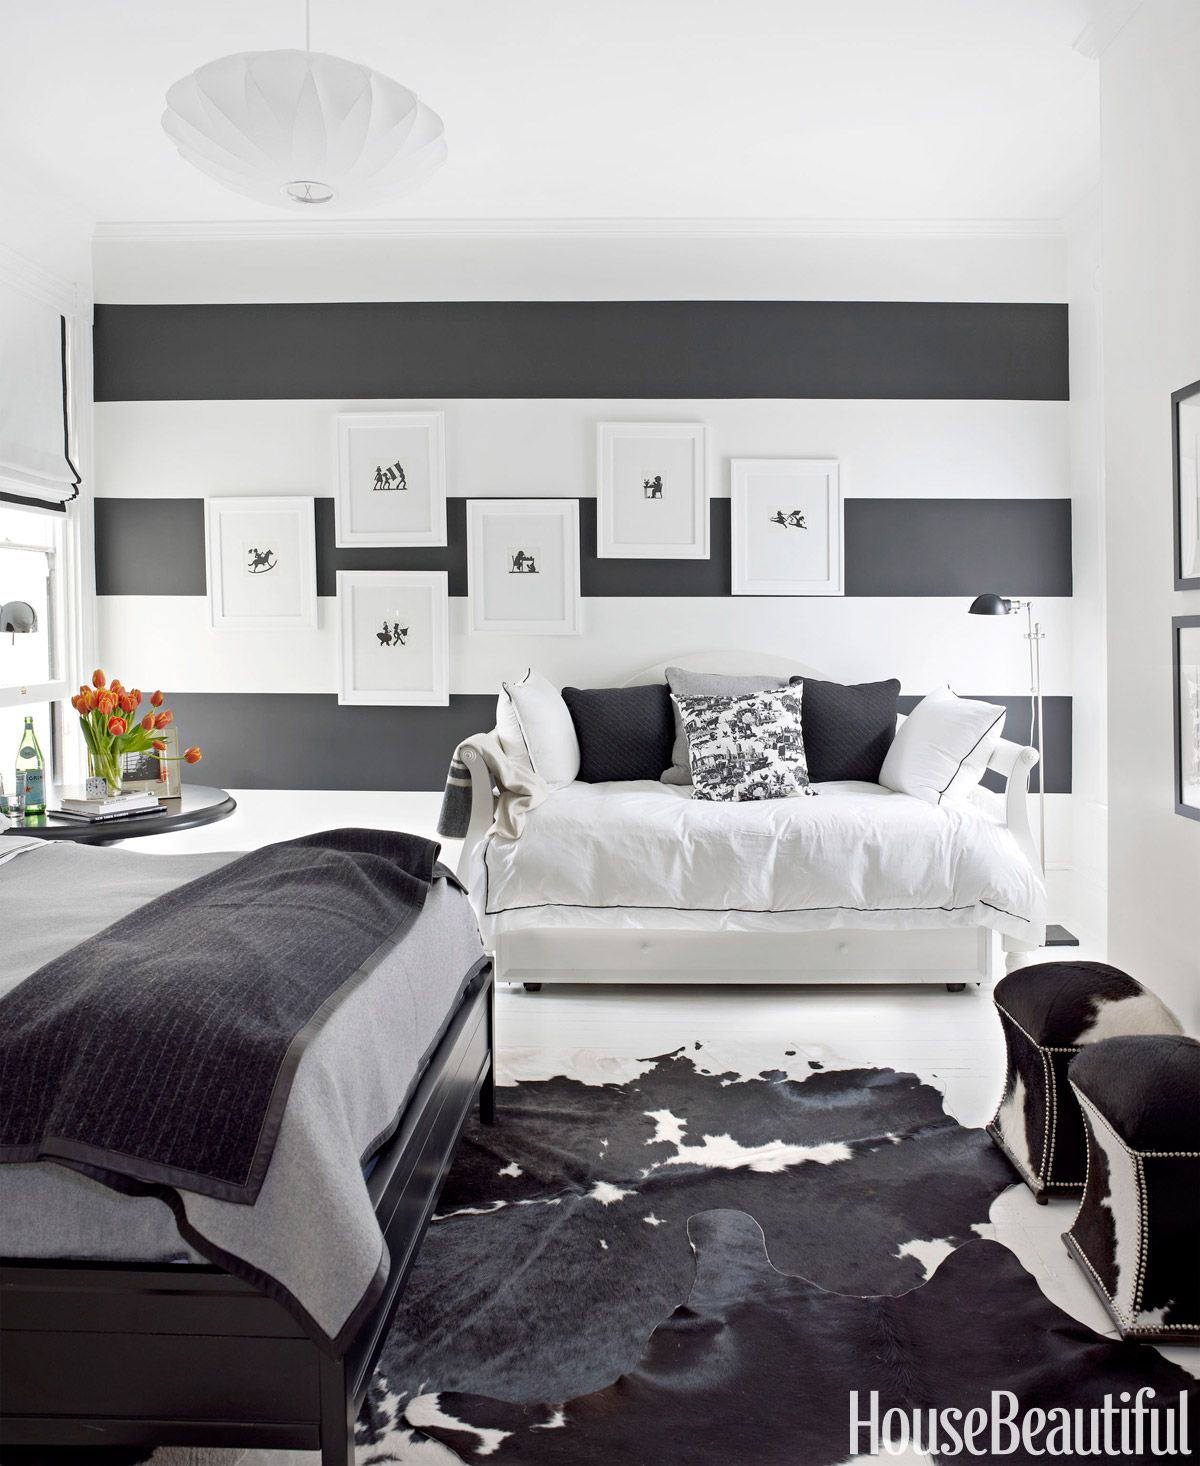 black and white designer rooms black and white decorating ideas - Bedroom Decorating Ideas With Black Furniture